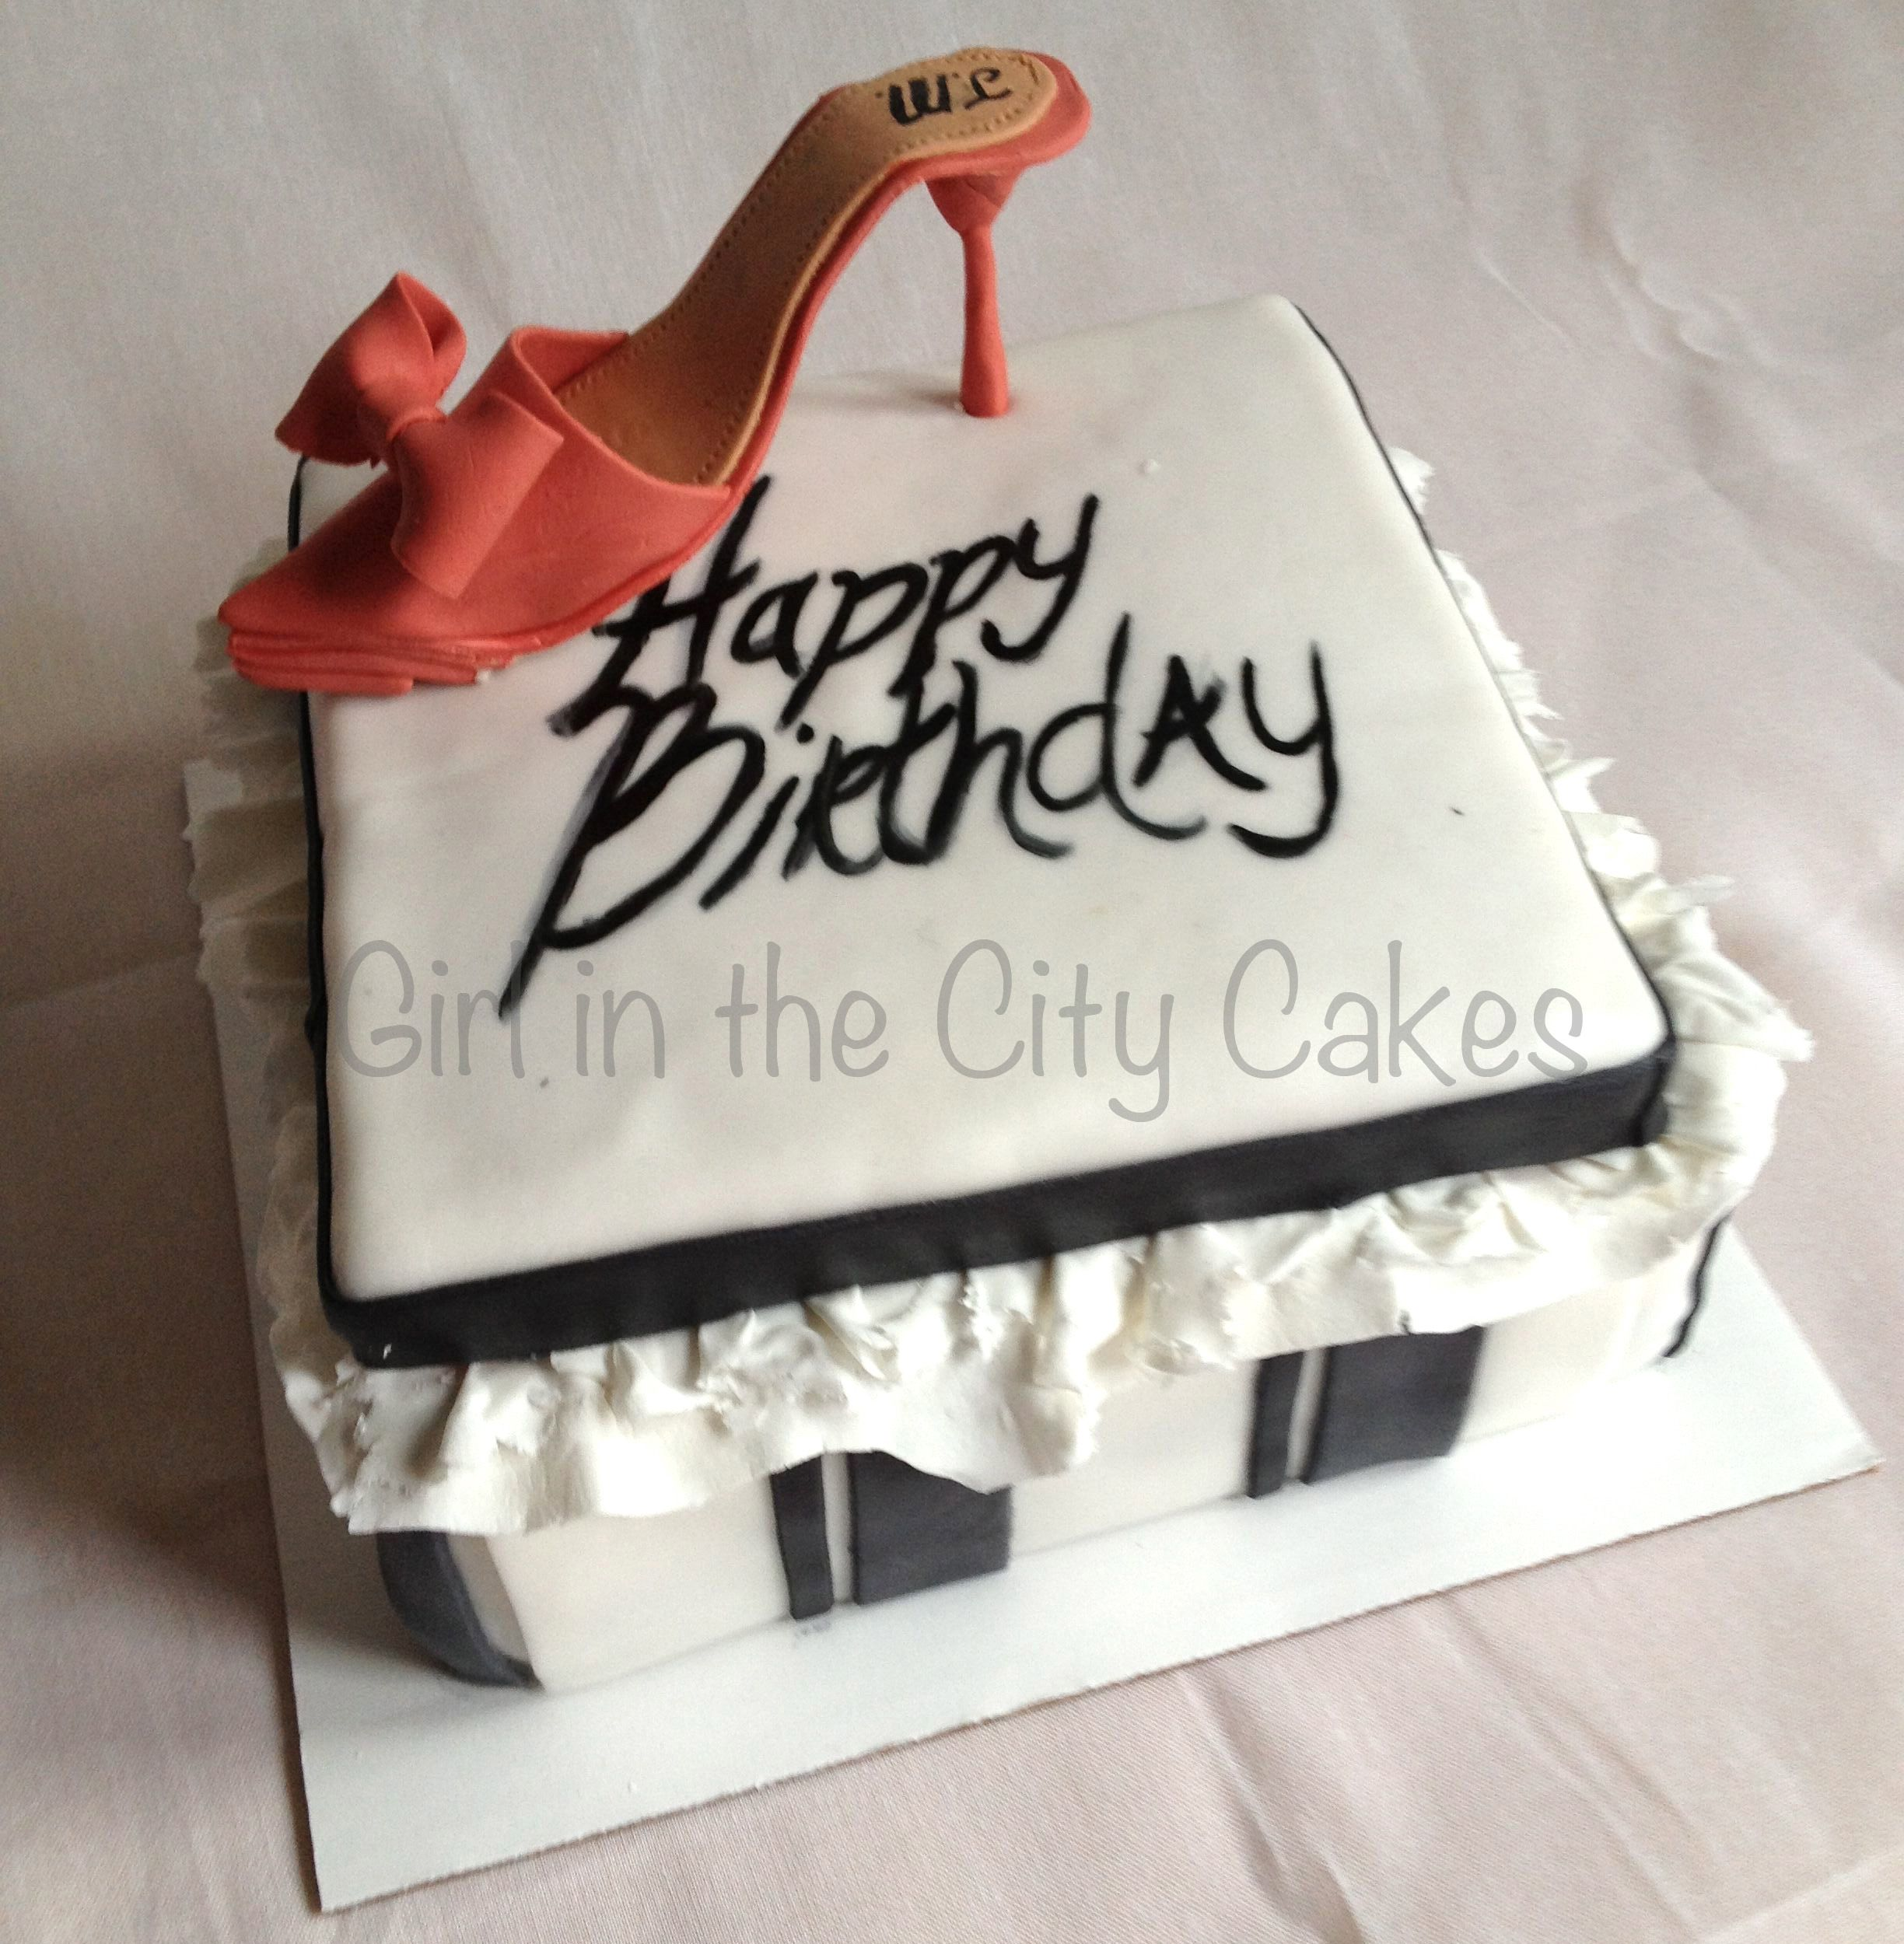 Shoebox birthday cake by Girl in the City Cakes